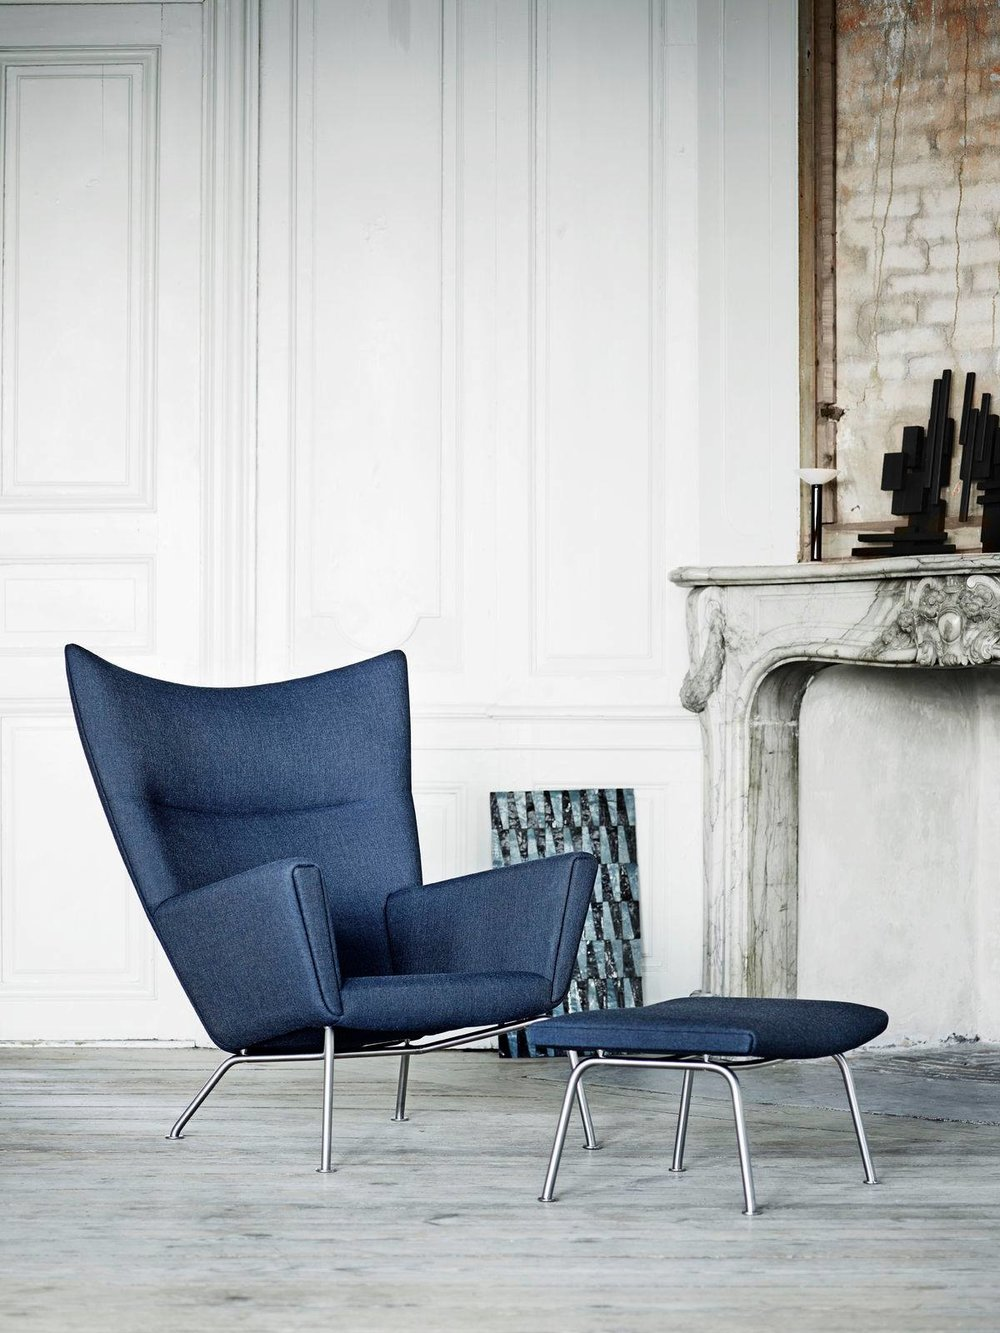 Carl Hansen and Sons Catalog 2017. Styling Despina Curtis.